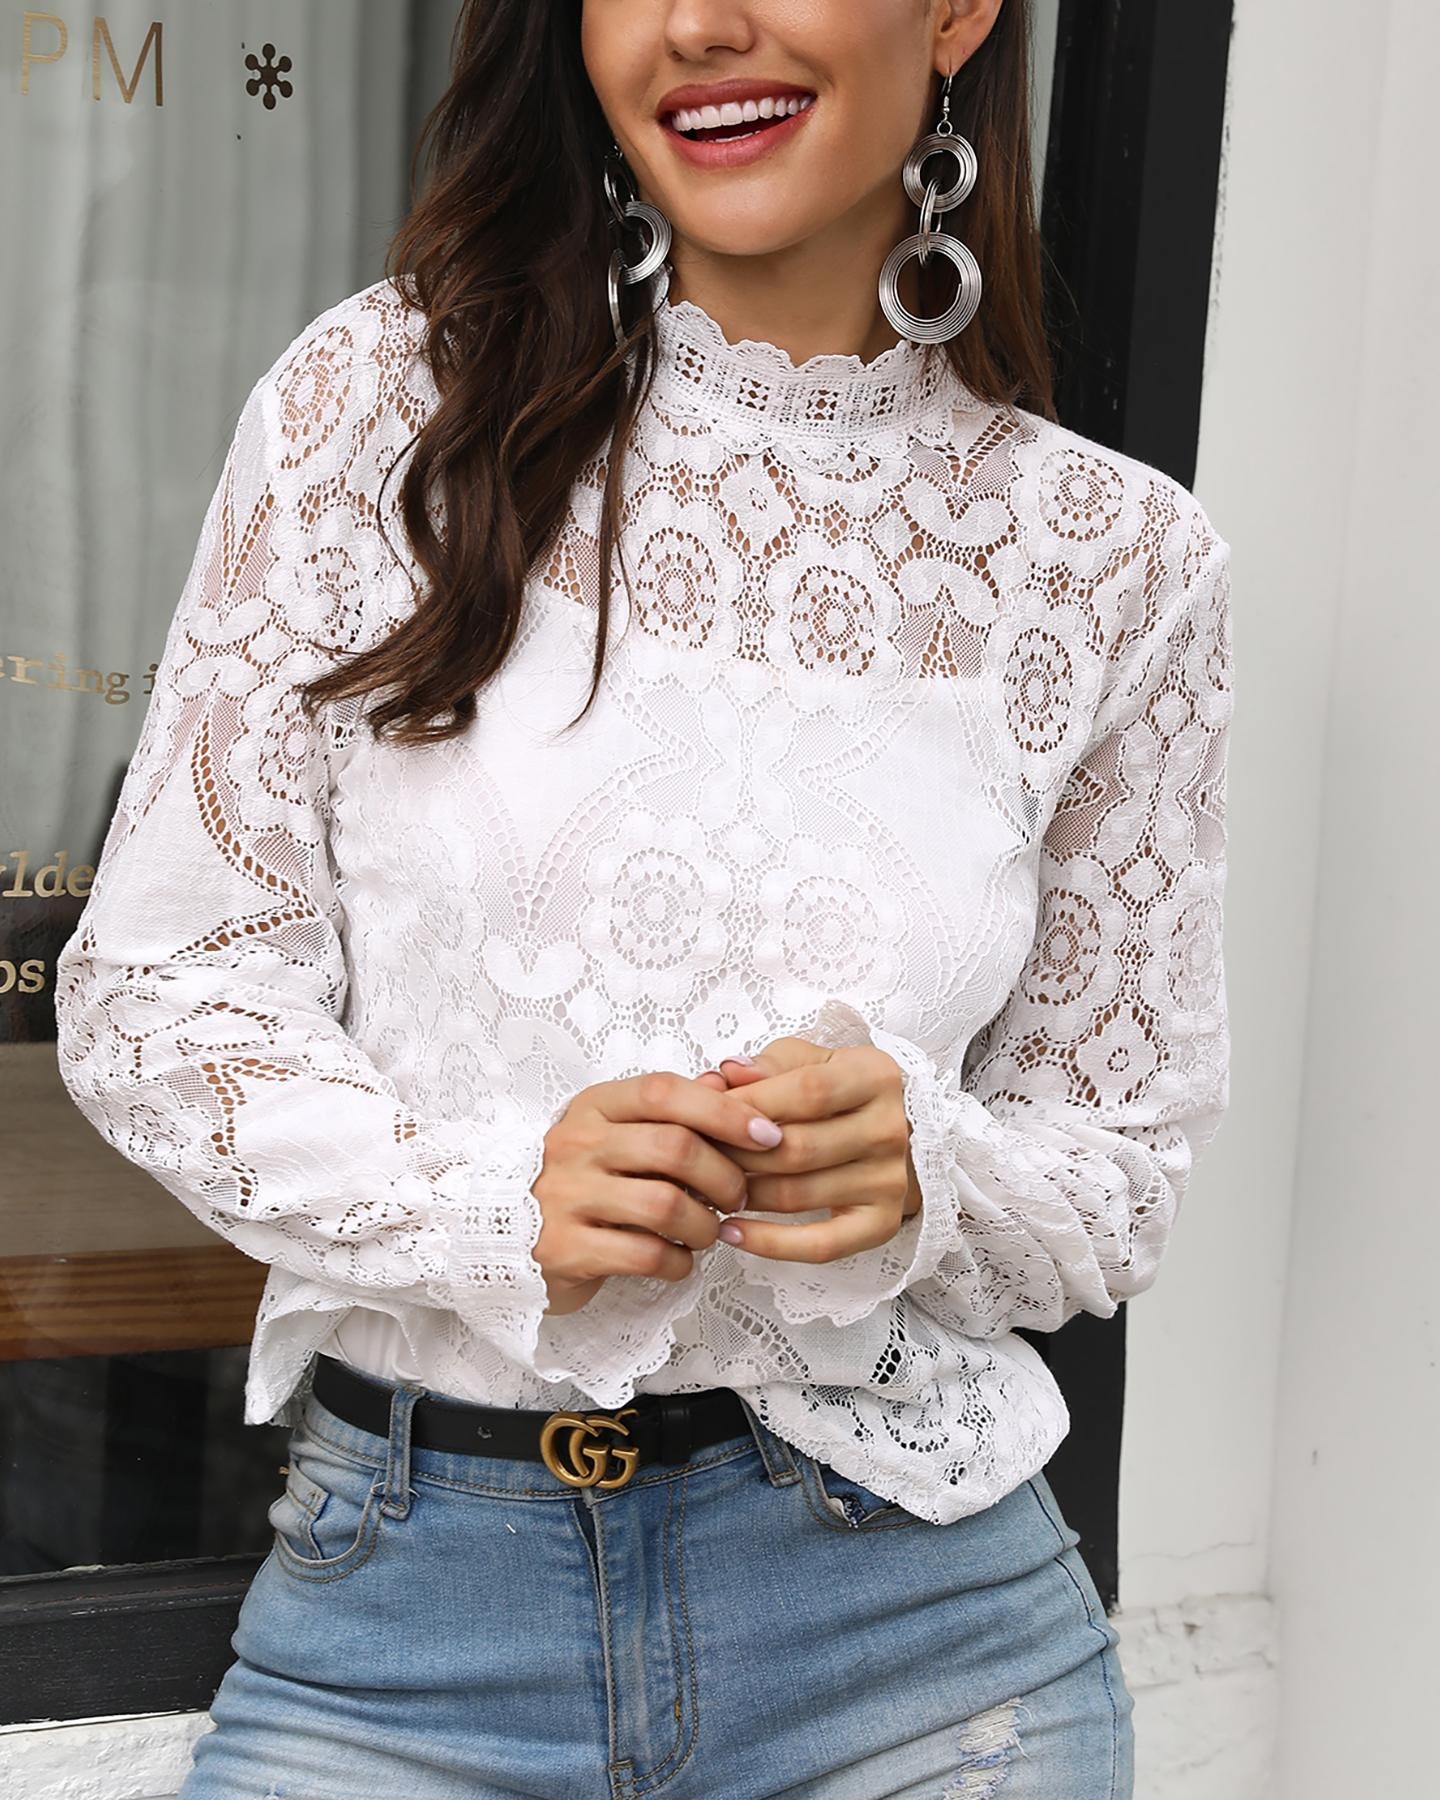 ivrose / Long Sleeve Hollow Out Lace Casual Top